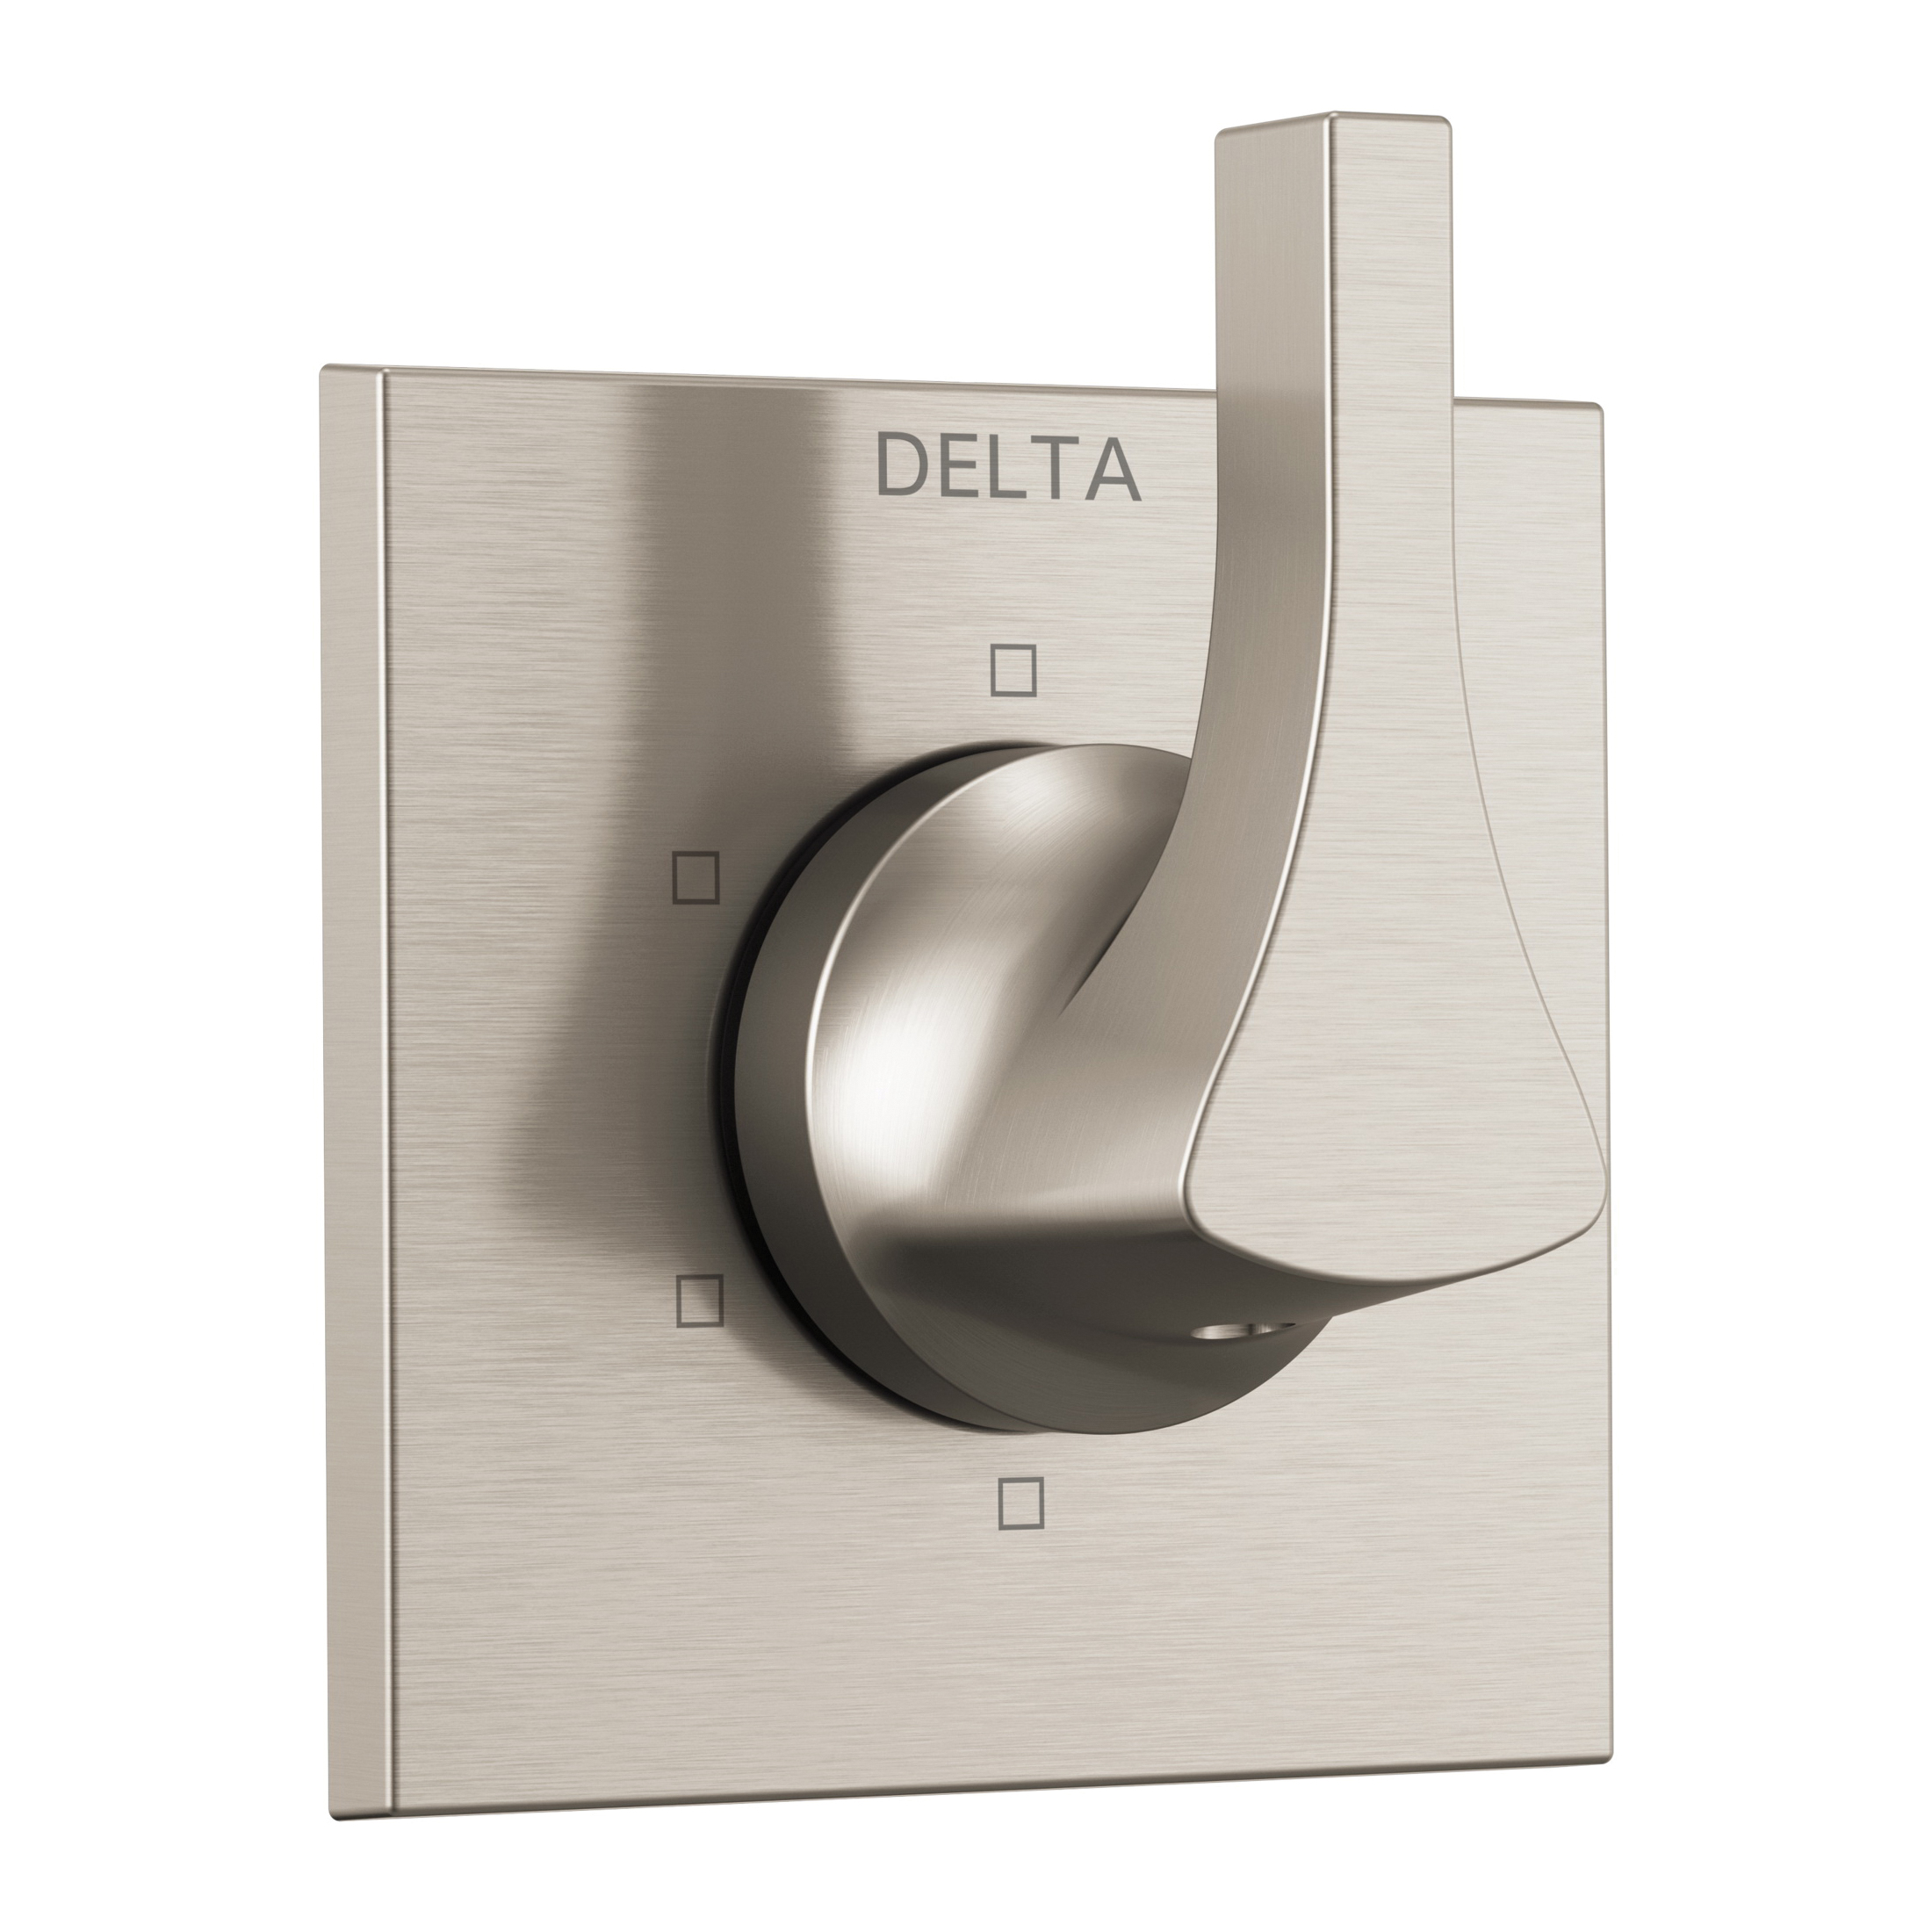 DELTA® T11974-SS 3-Port 6-Setting Diverter Trim, Hand Shower Yes/No: No, Brilliance® Stainless Steel